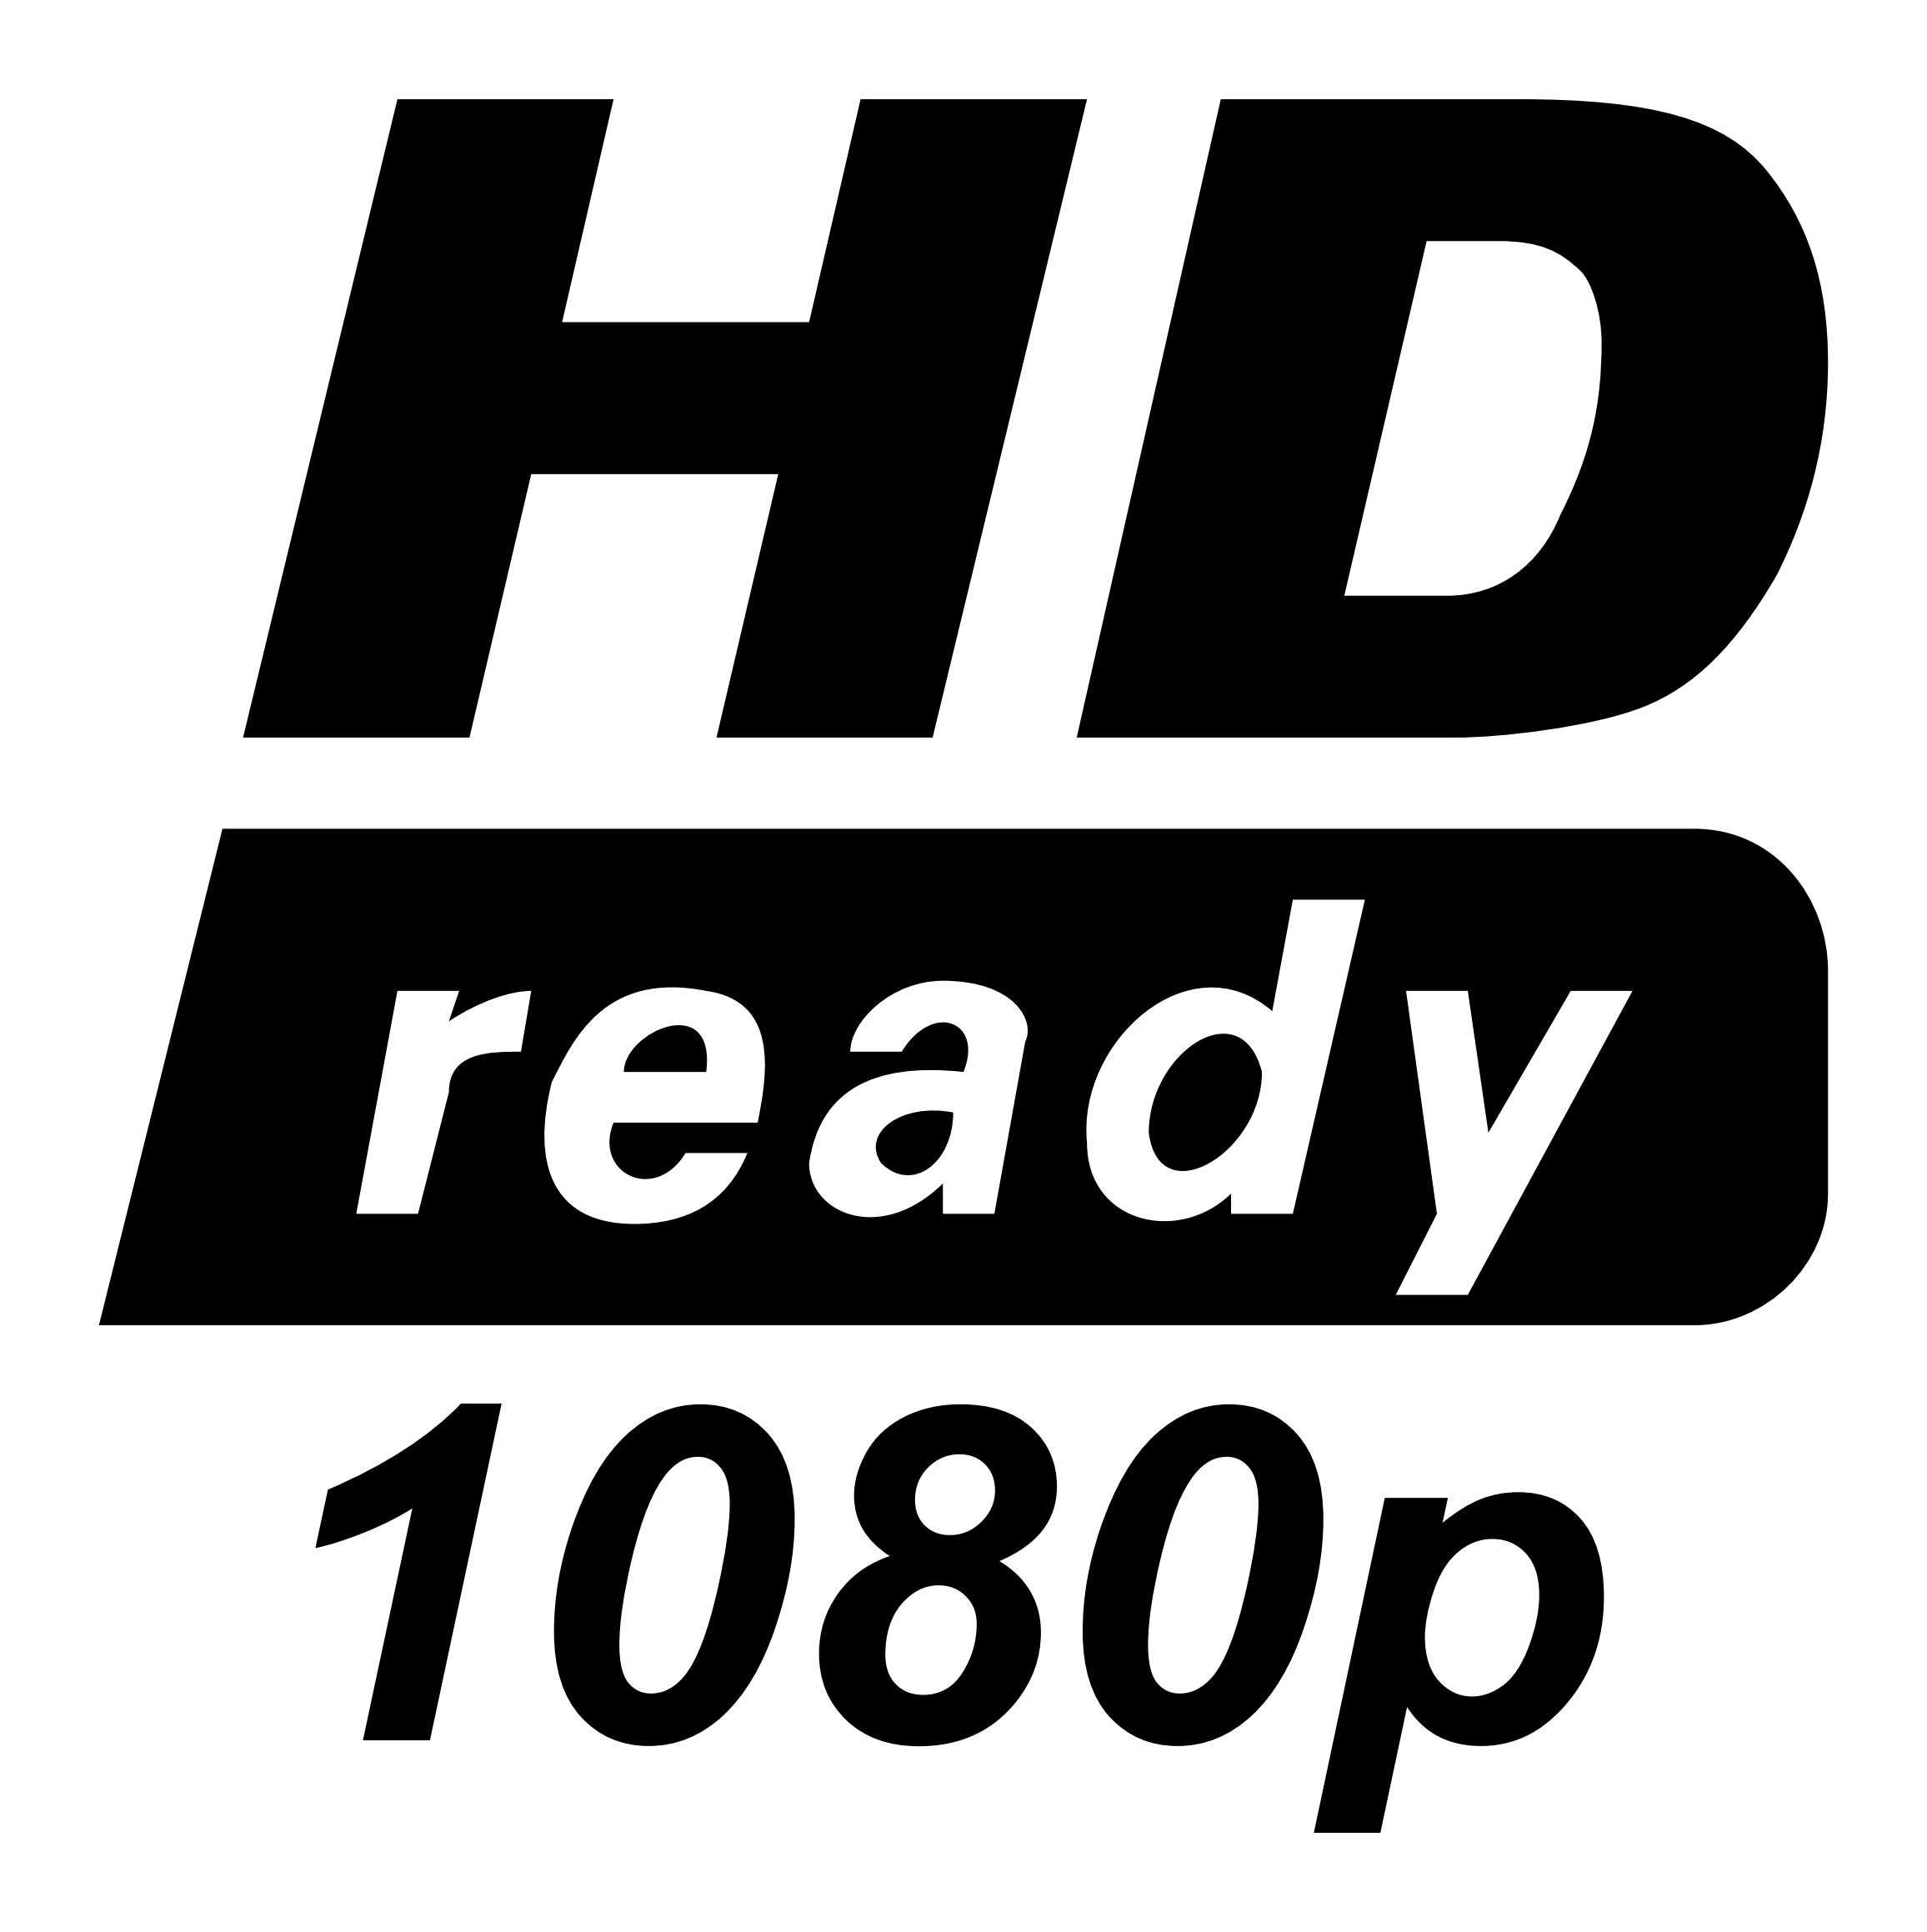 HD ready 1080p logo1